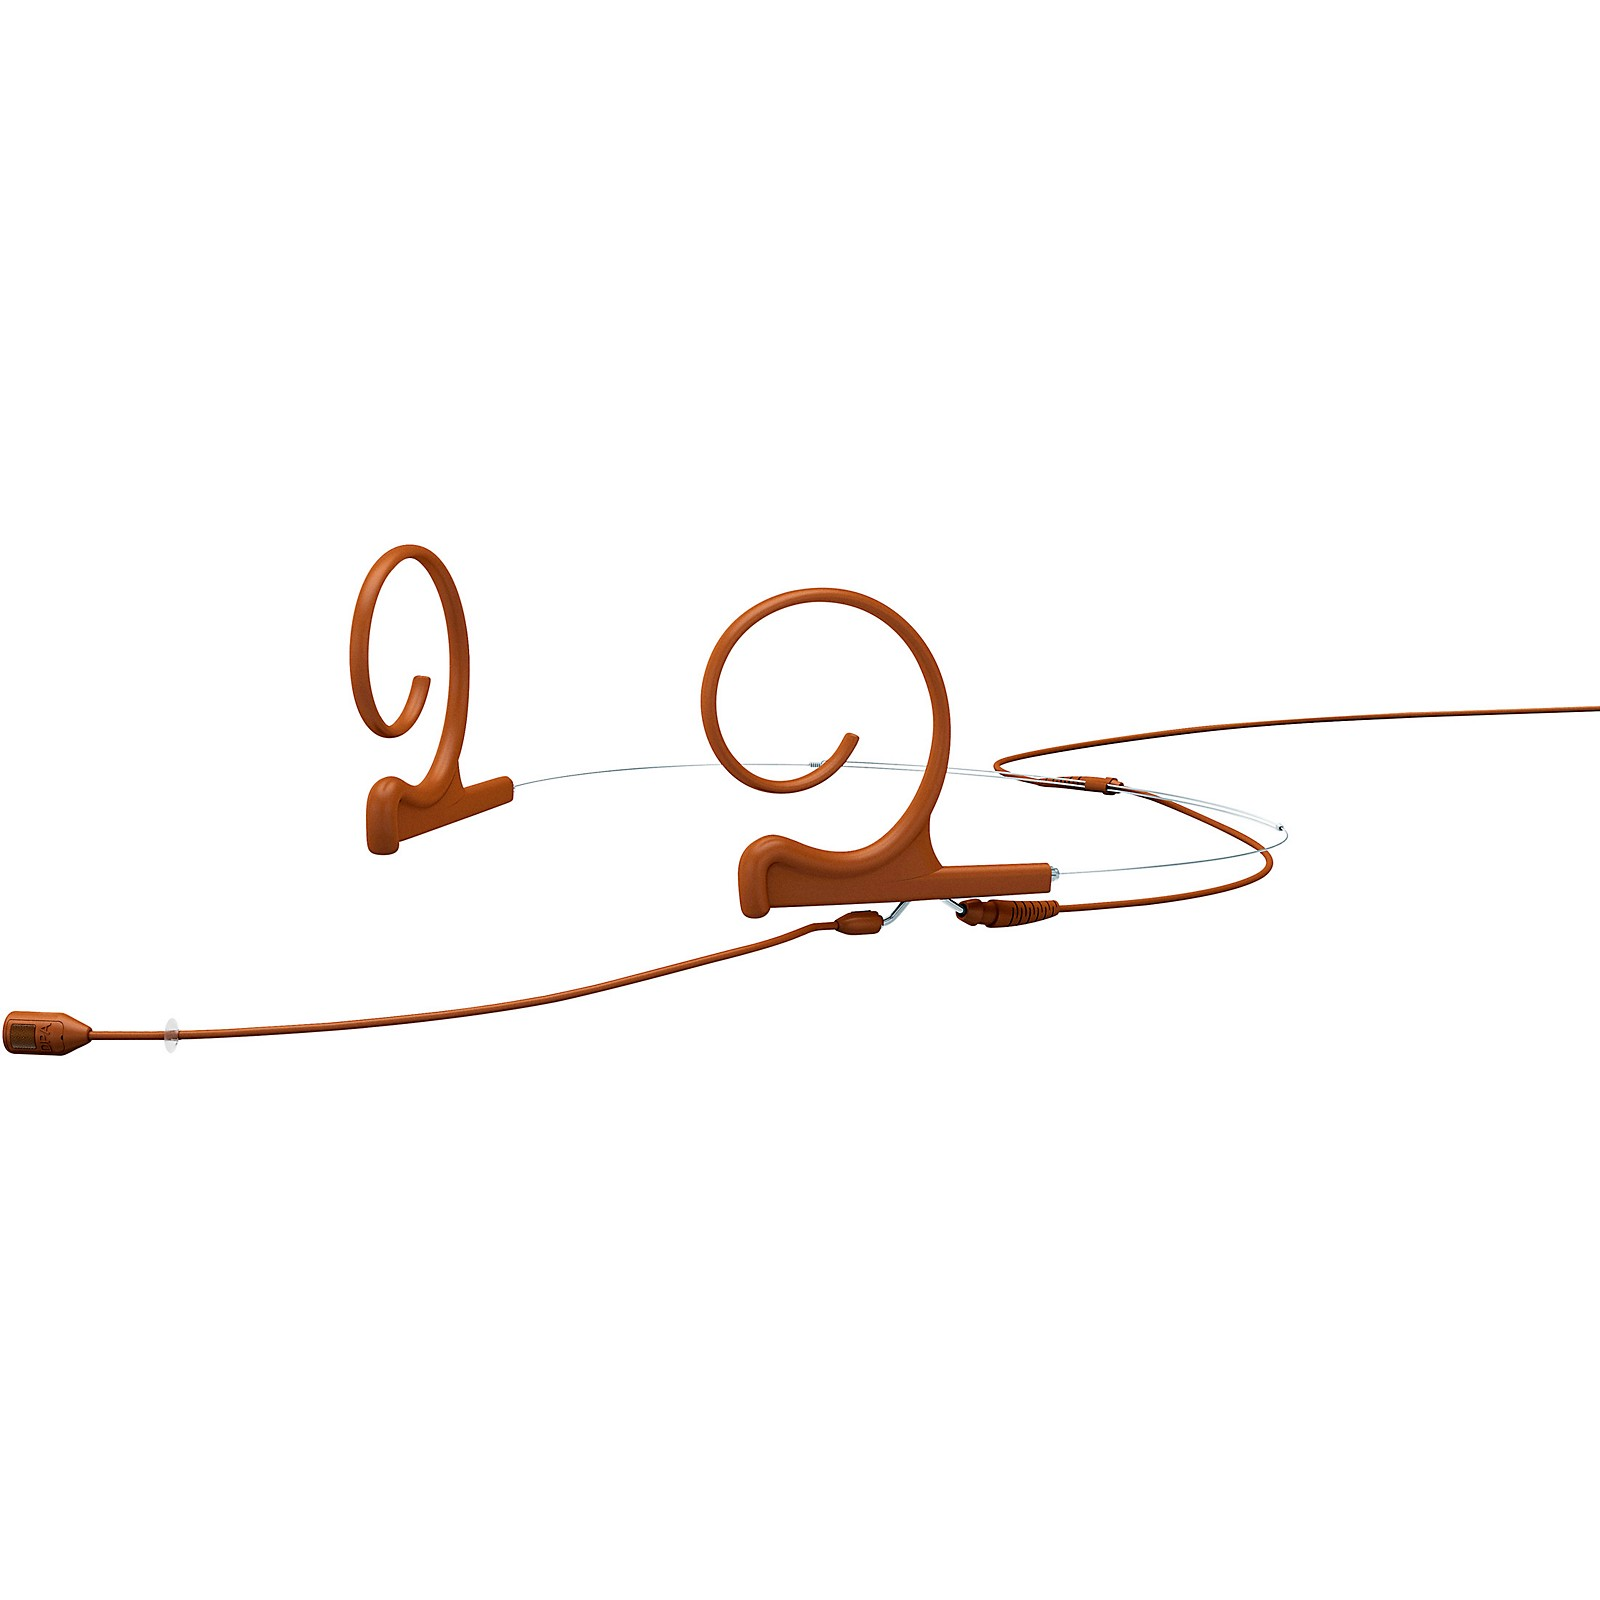 DPA Microphones d:fine FID Slim Directional Headset Microphone, Dual ear, 120mm boom, Microdot connector, Brown